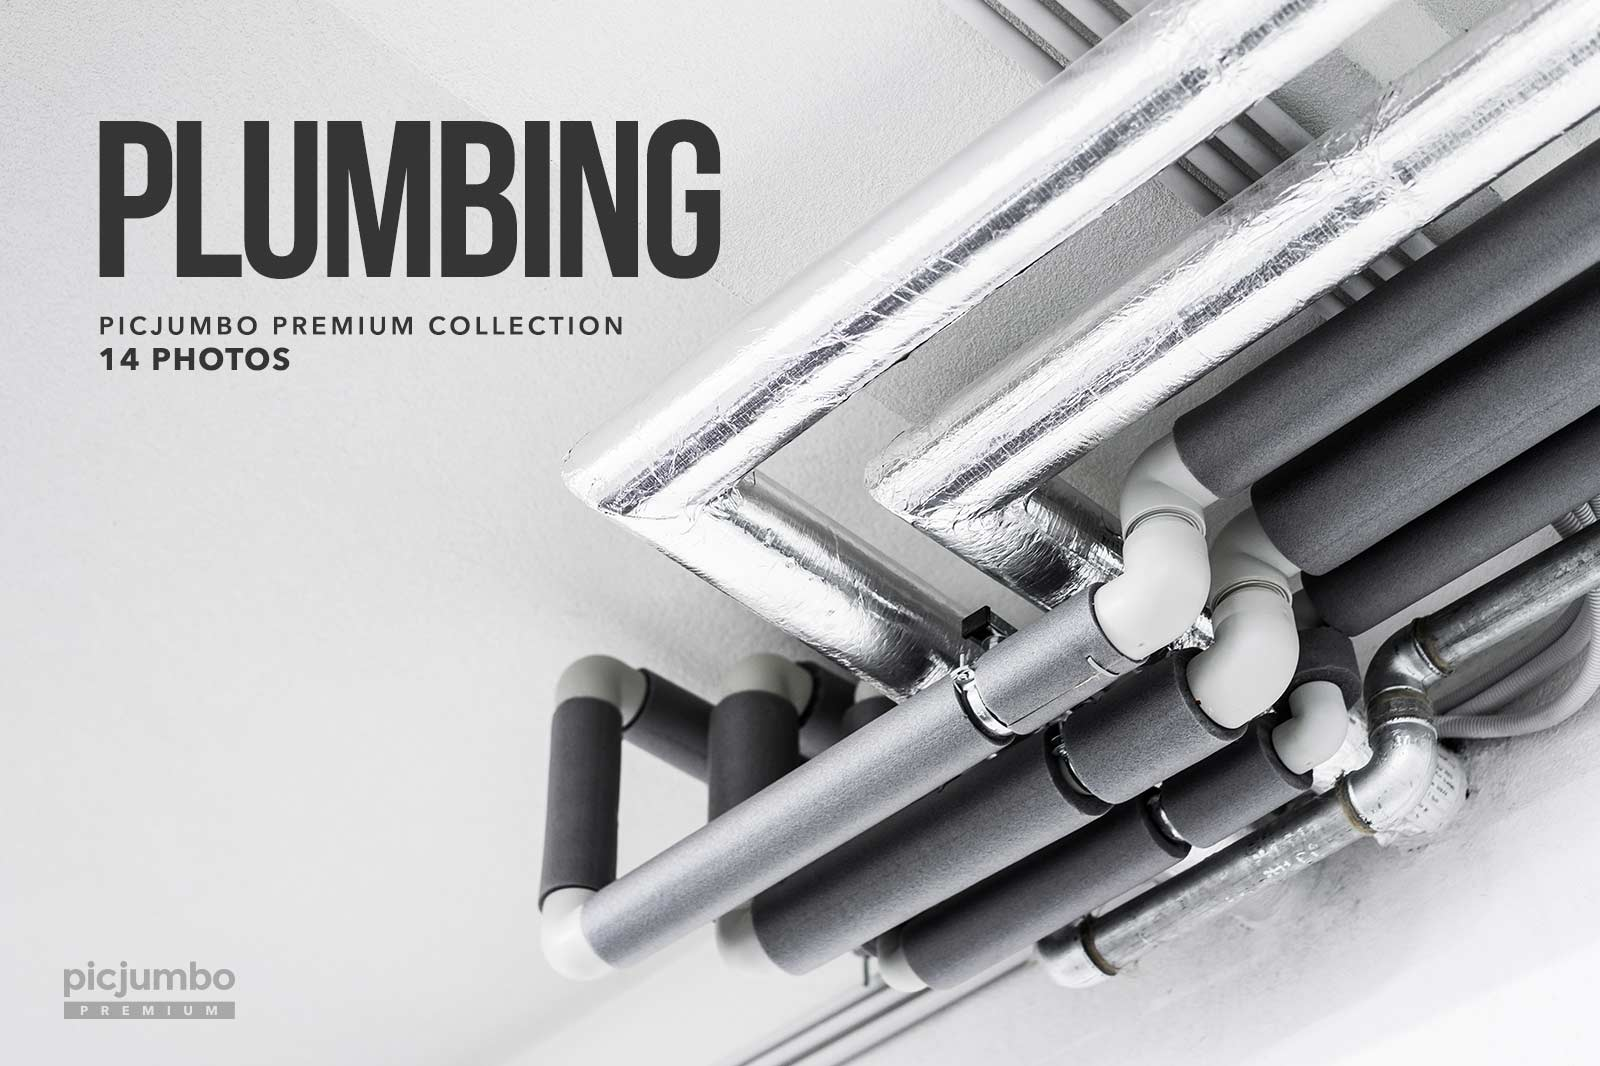 Plumbing — Join PREMIUM and get instant access to this collection!